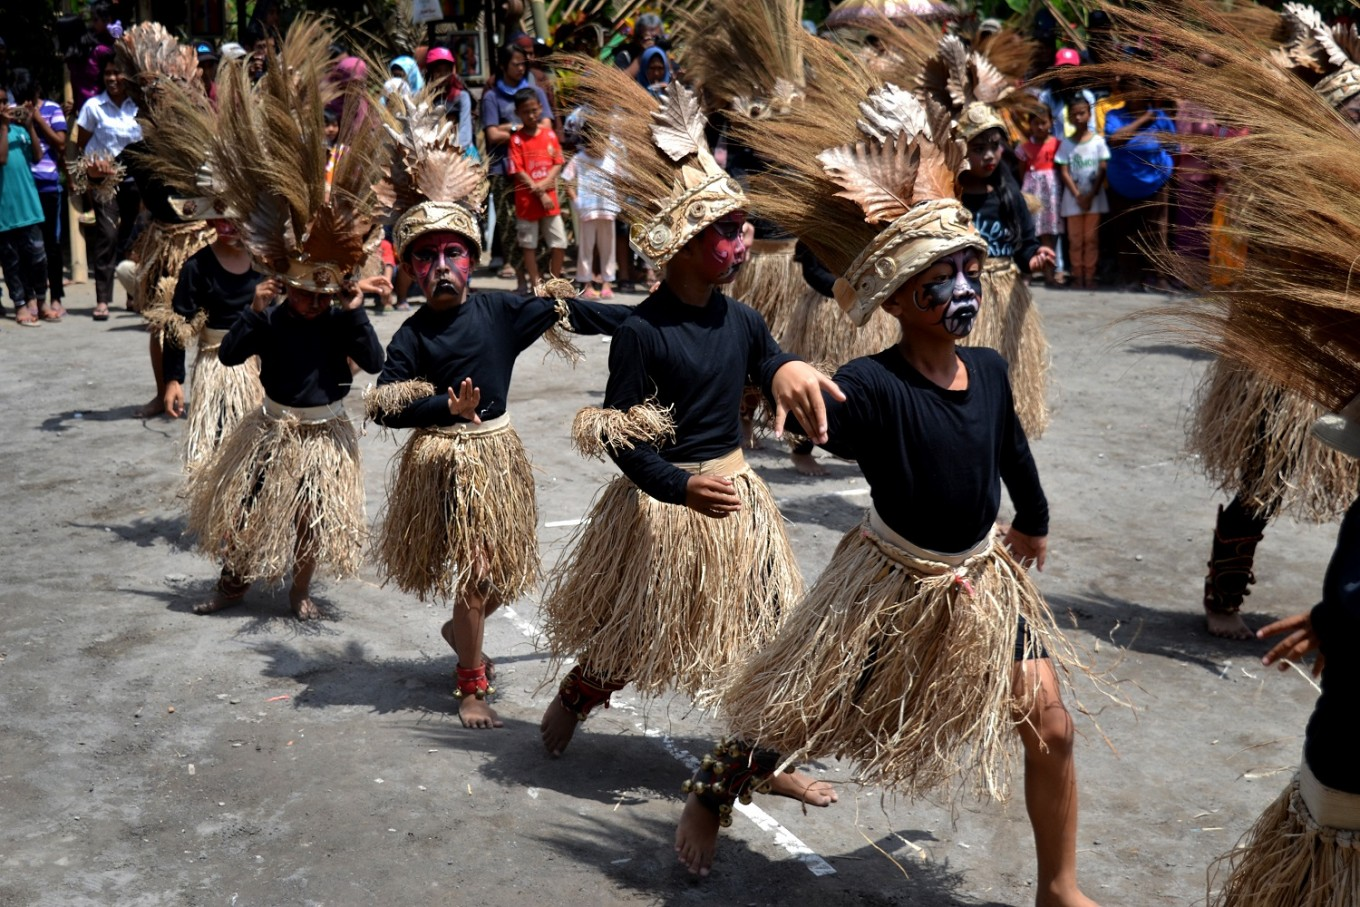 Natural materials were used in the dance costumes.